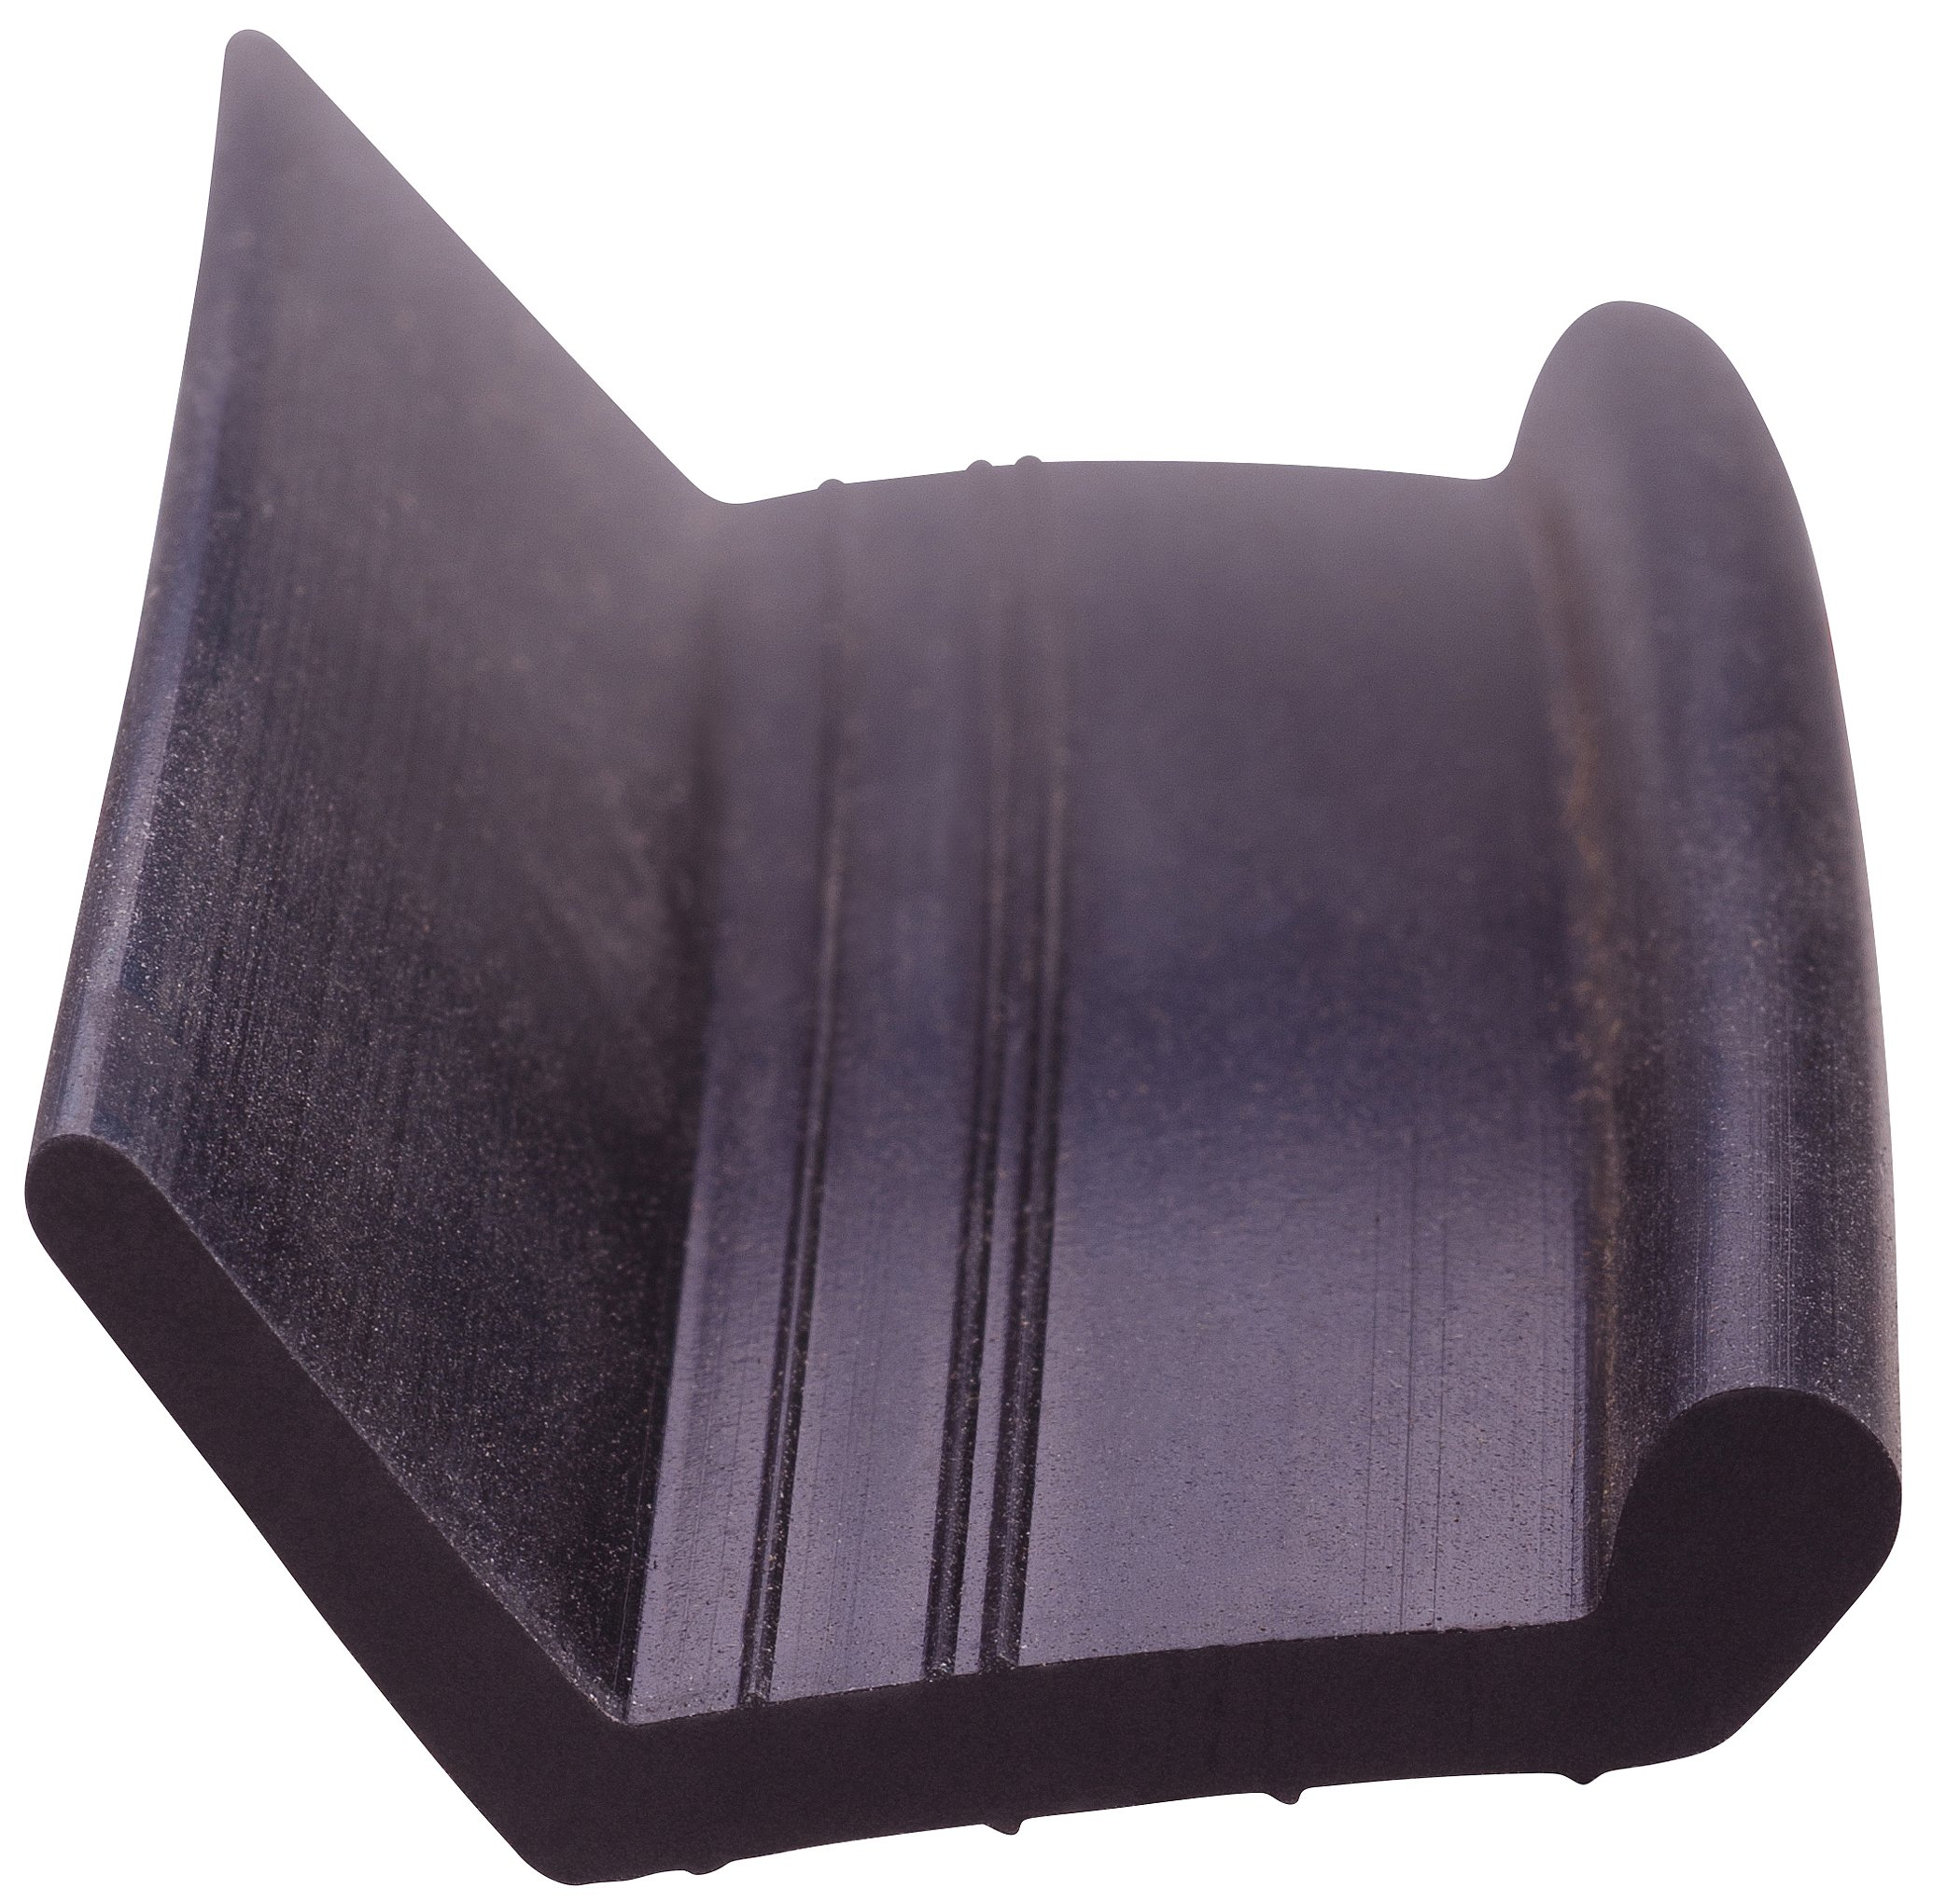 Professional Heavy Duty Wood Door Bottom Rubber. Includes AOD Retail Lubricant.